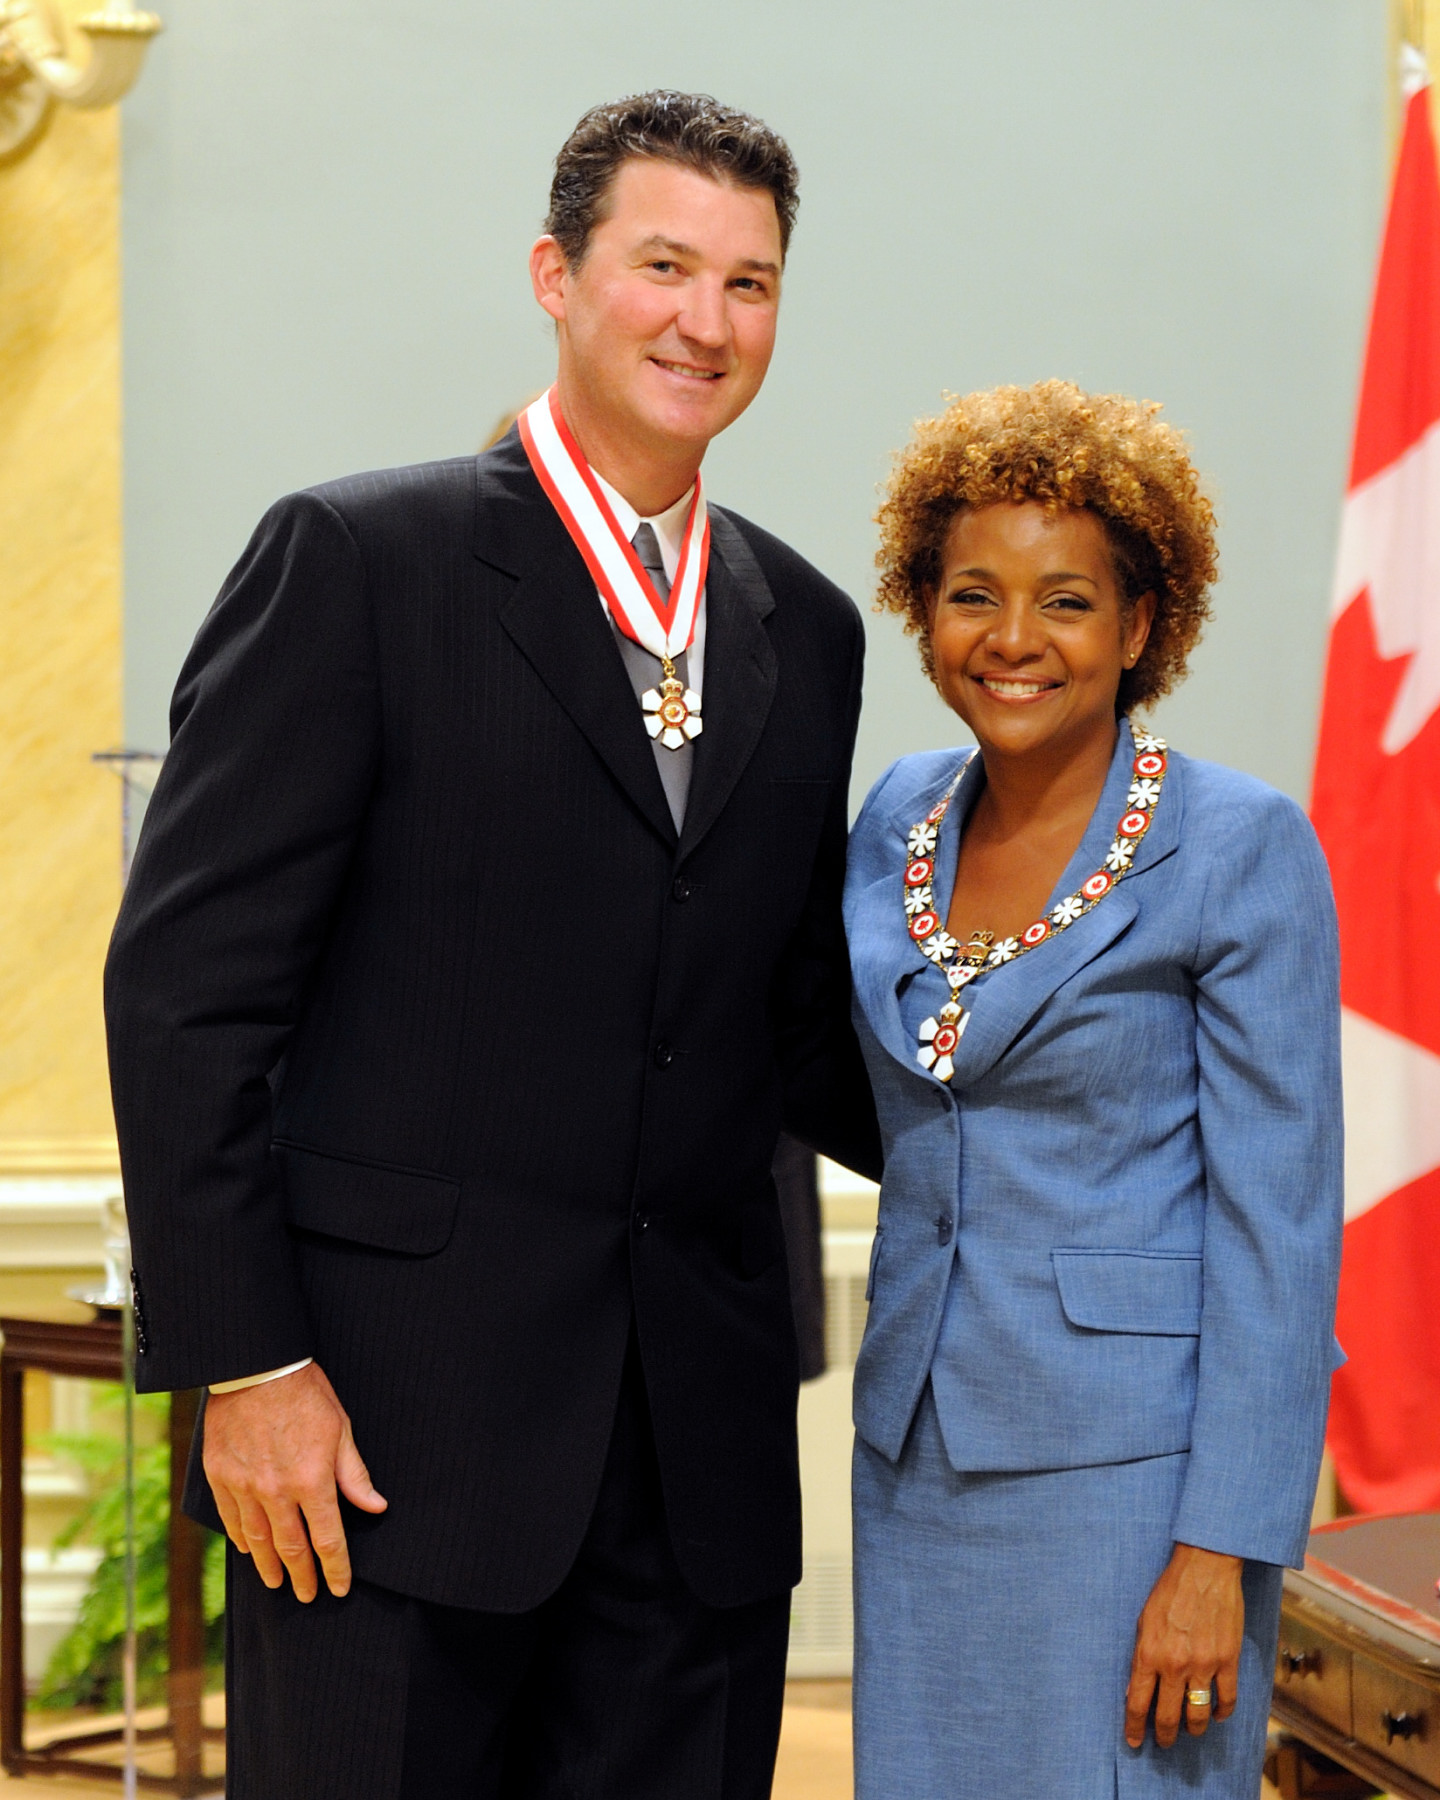 Mario Lemieux (Pittsburgh, Pennsylvania, U.S.A. and Montréal, Quebec) is one of Canada's greatest hockey legends and is an inspirational role model. A gifted forward with the Pittsburgh Penguins, he won numerous awards for his scoring skills and his leadership on the ice. He also captained Canada's men's hockey team to gold at the 2002 Winter Olympics. His attitude in coming back from serious health issues during his on-ice career has set an example of the power of determination and perseverance for young players. Now a co-owner of the Penguins, he also supports fundraising initiatives for the Hockey Canada Foundation and the Mario Lemieux Foundation, which provide funds for medical and other charitable organizations.